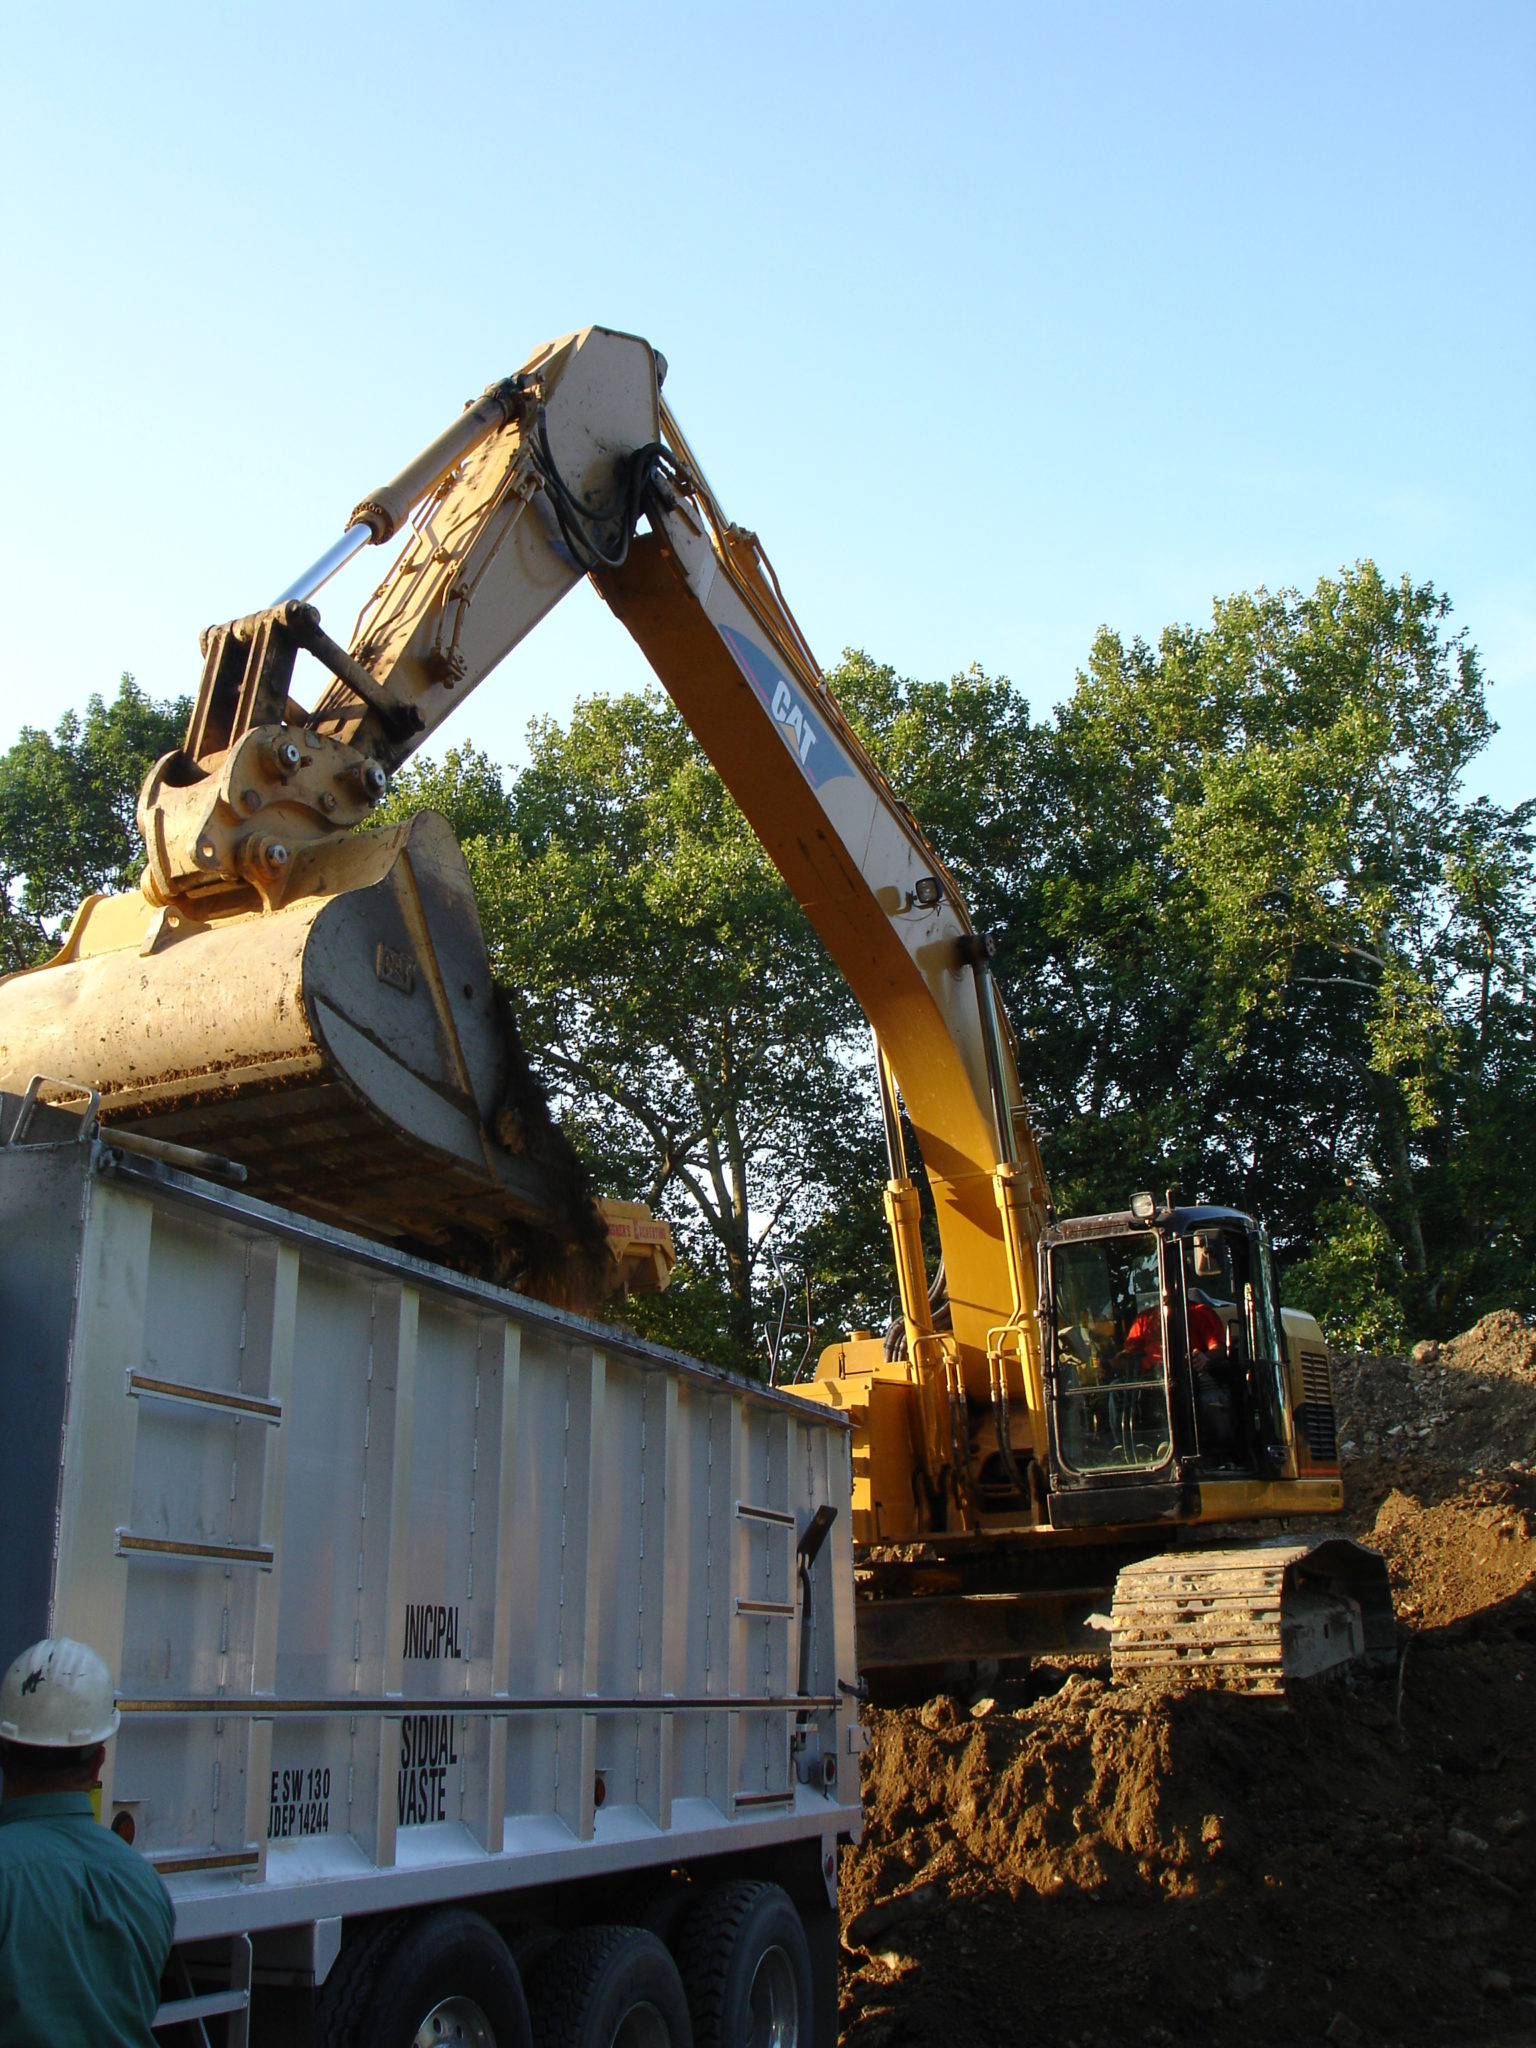 A digger removes Soil to Dispose of in the appropriate way